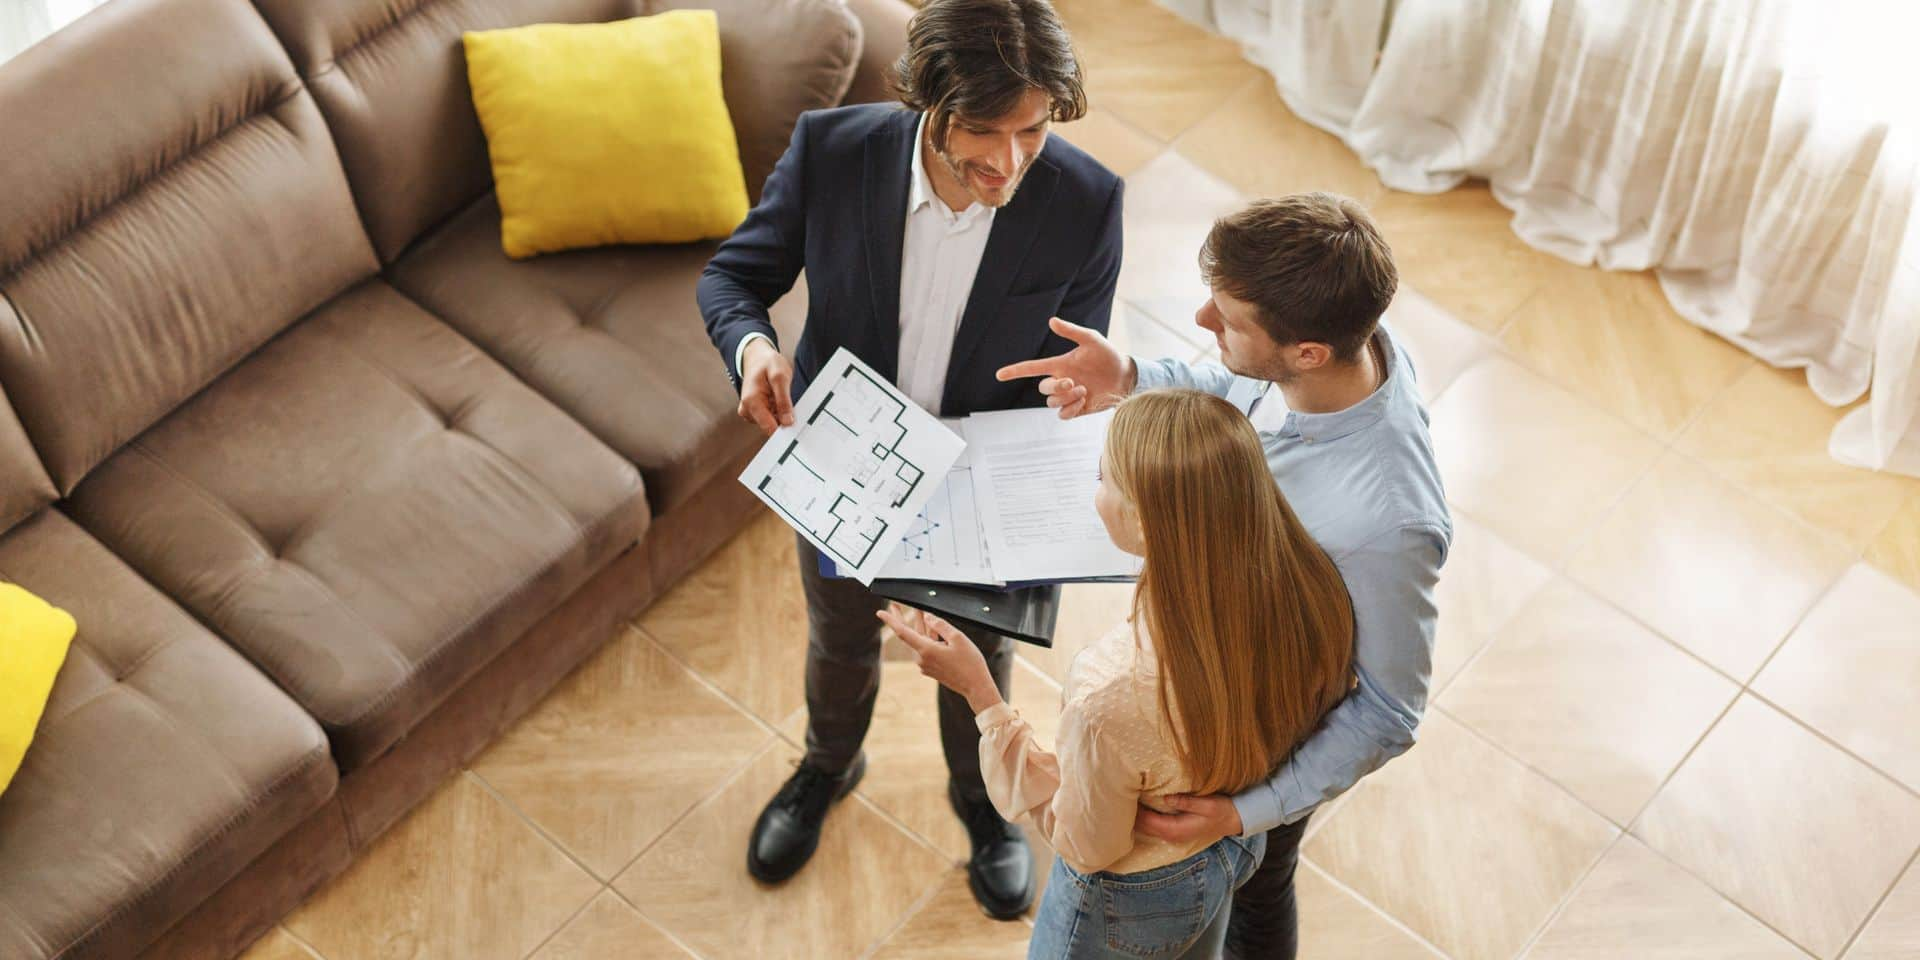 Above,View,Of,Real,Estate,Agent,Communicating,With,Customers,About